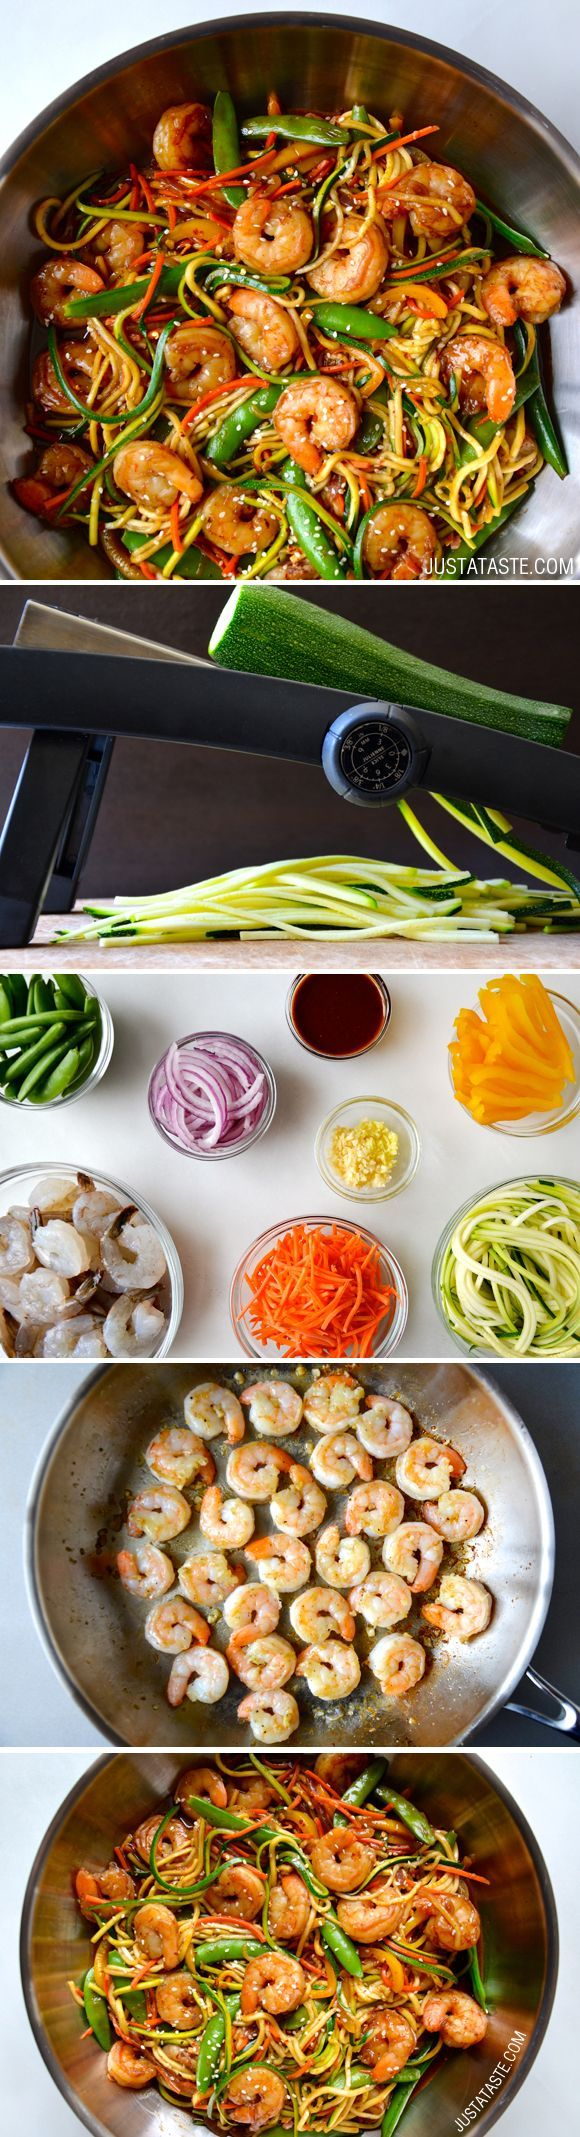 Asian Zucchini Noodle Stir-Fry with Shrimp #recipe from justataste.com